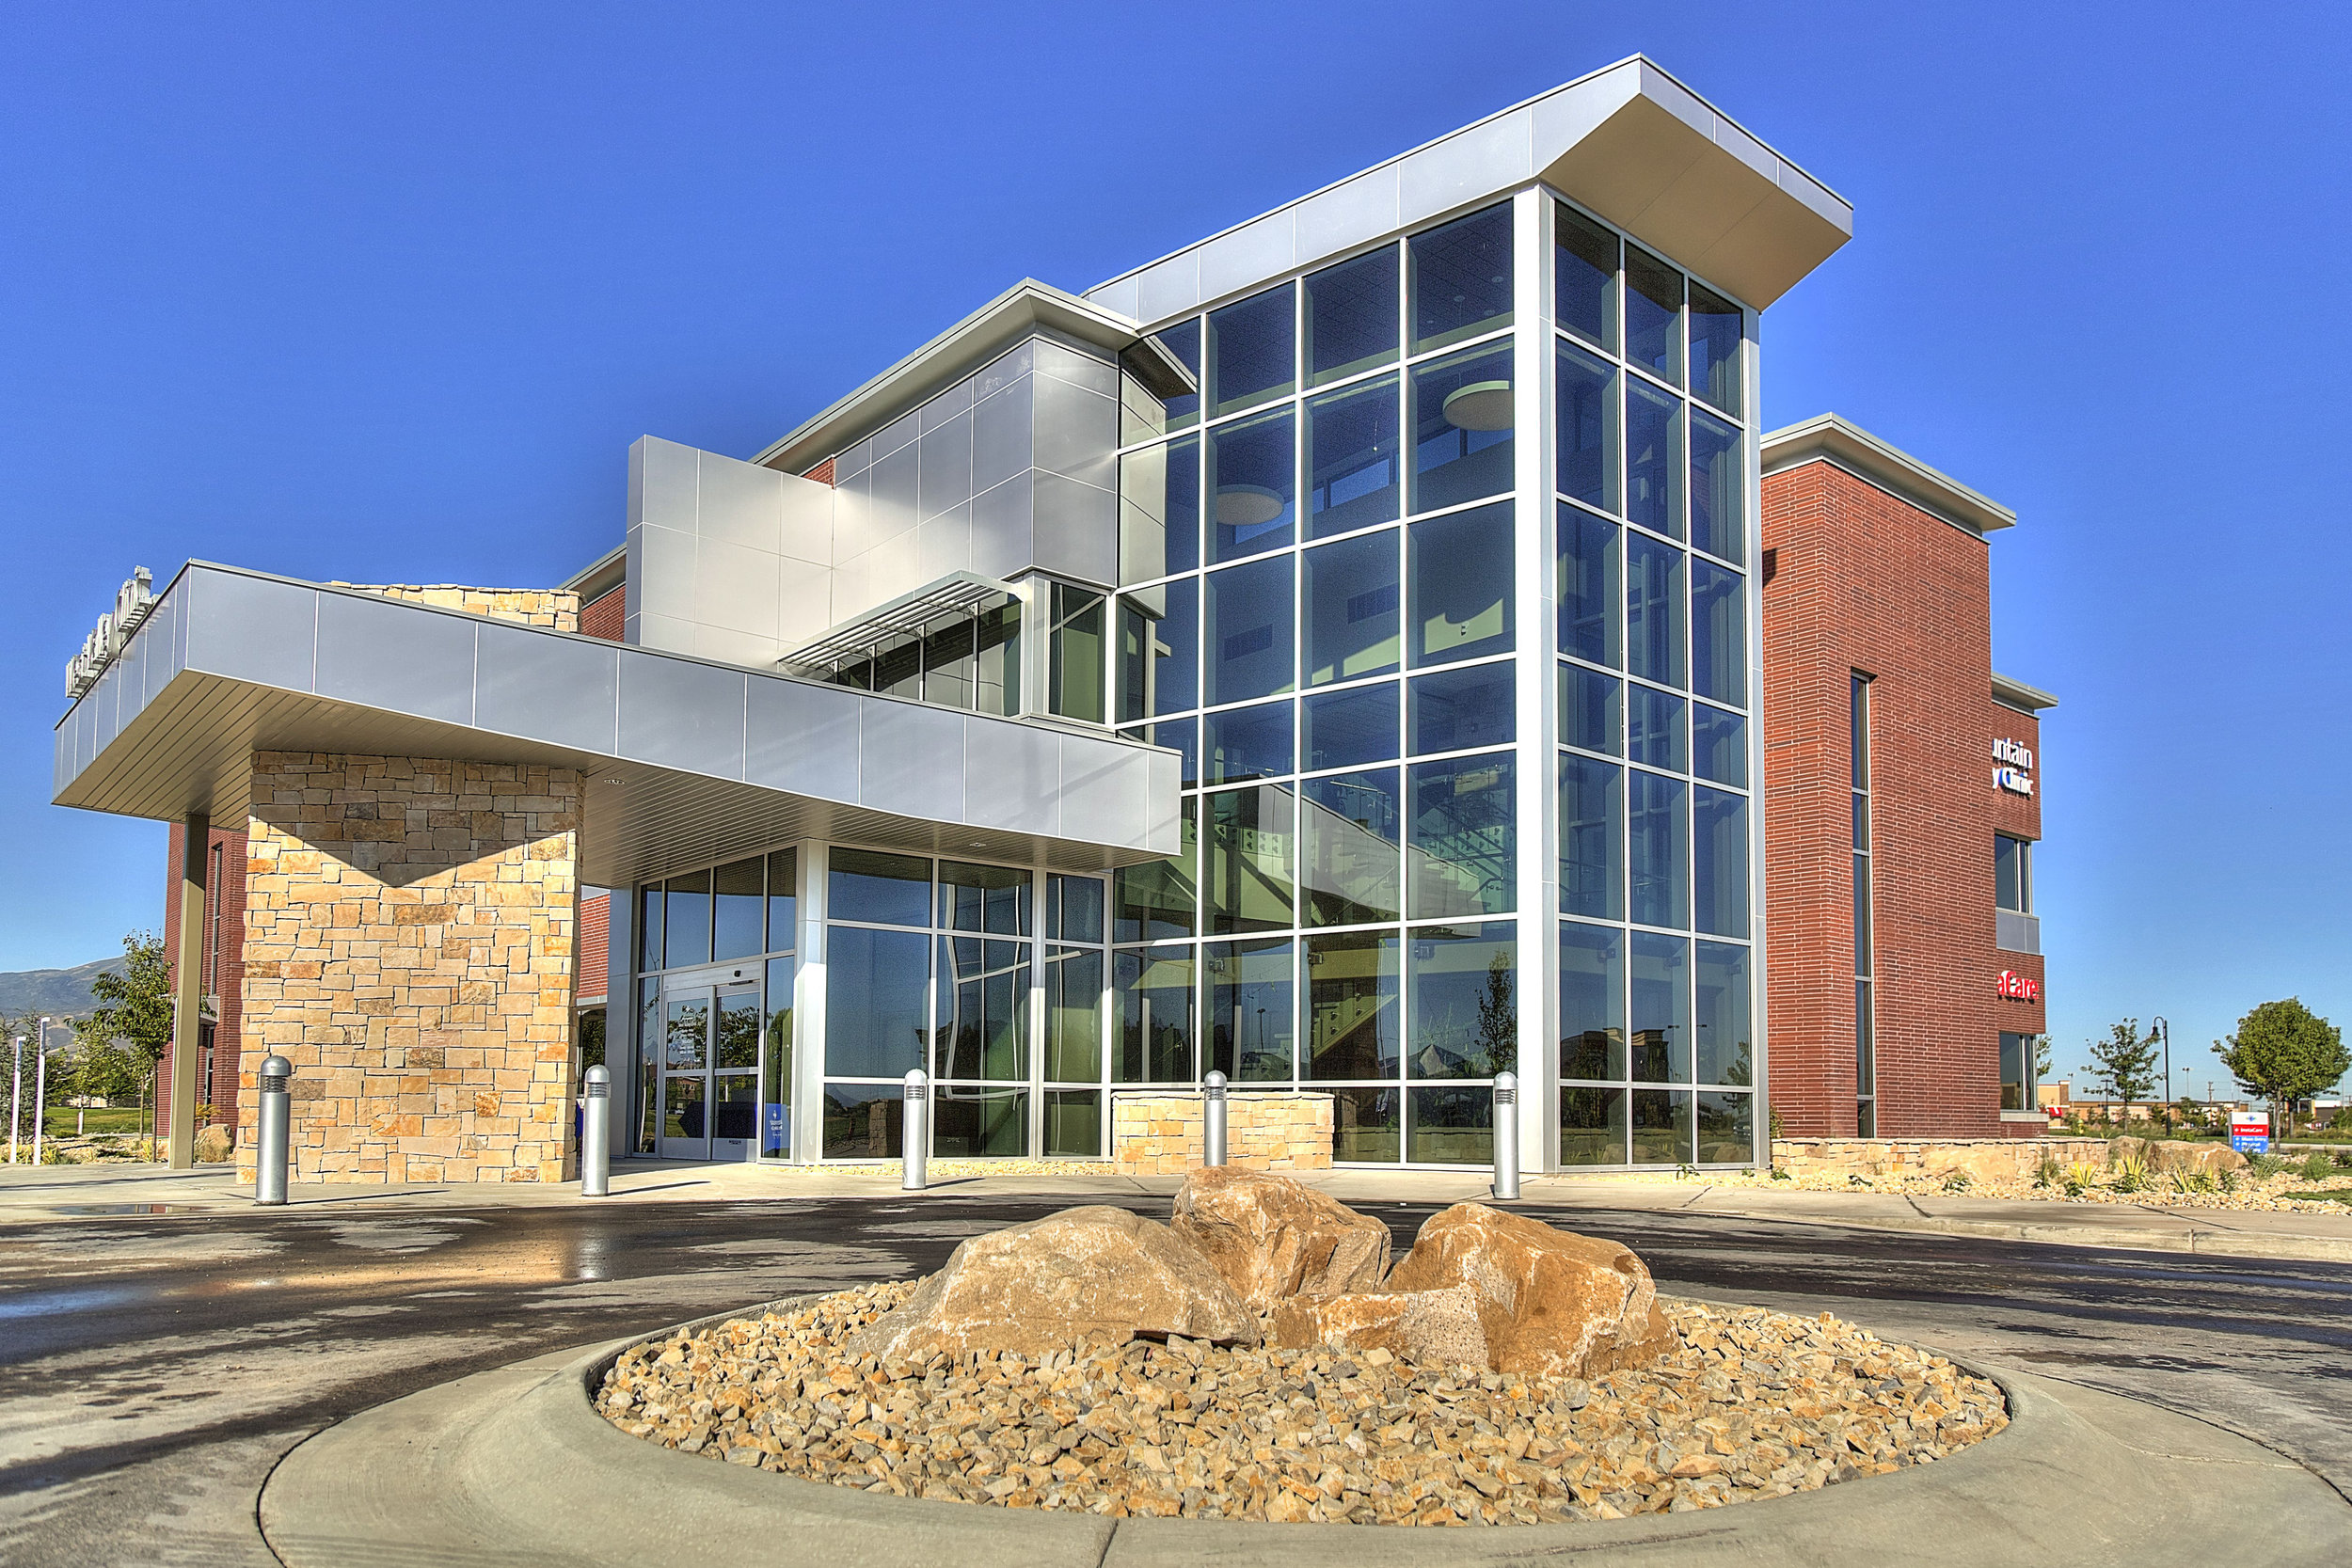 Intermountain Health Care - West Valley City, UT